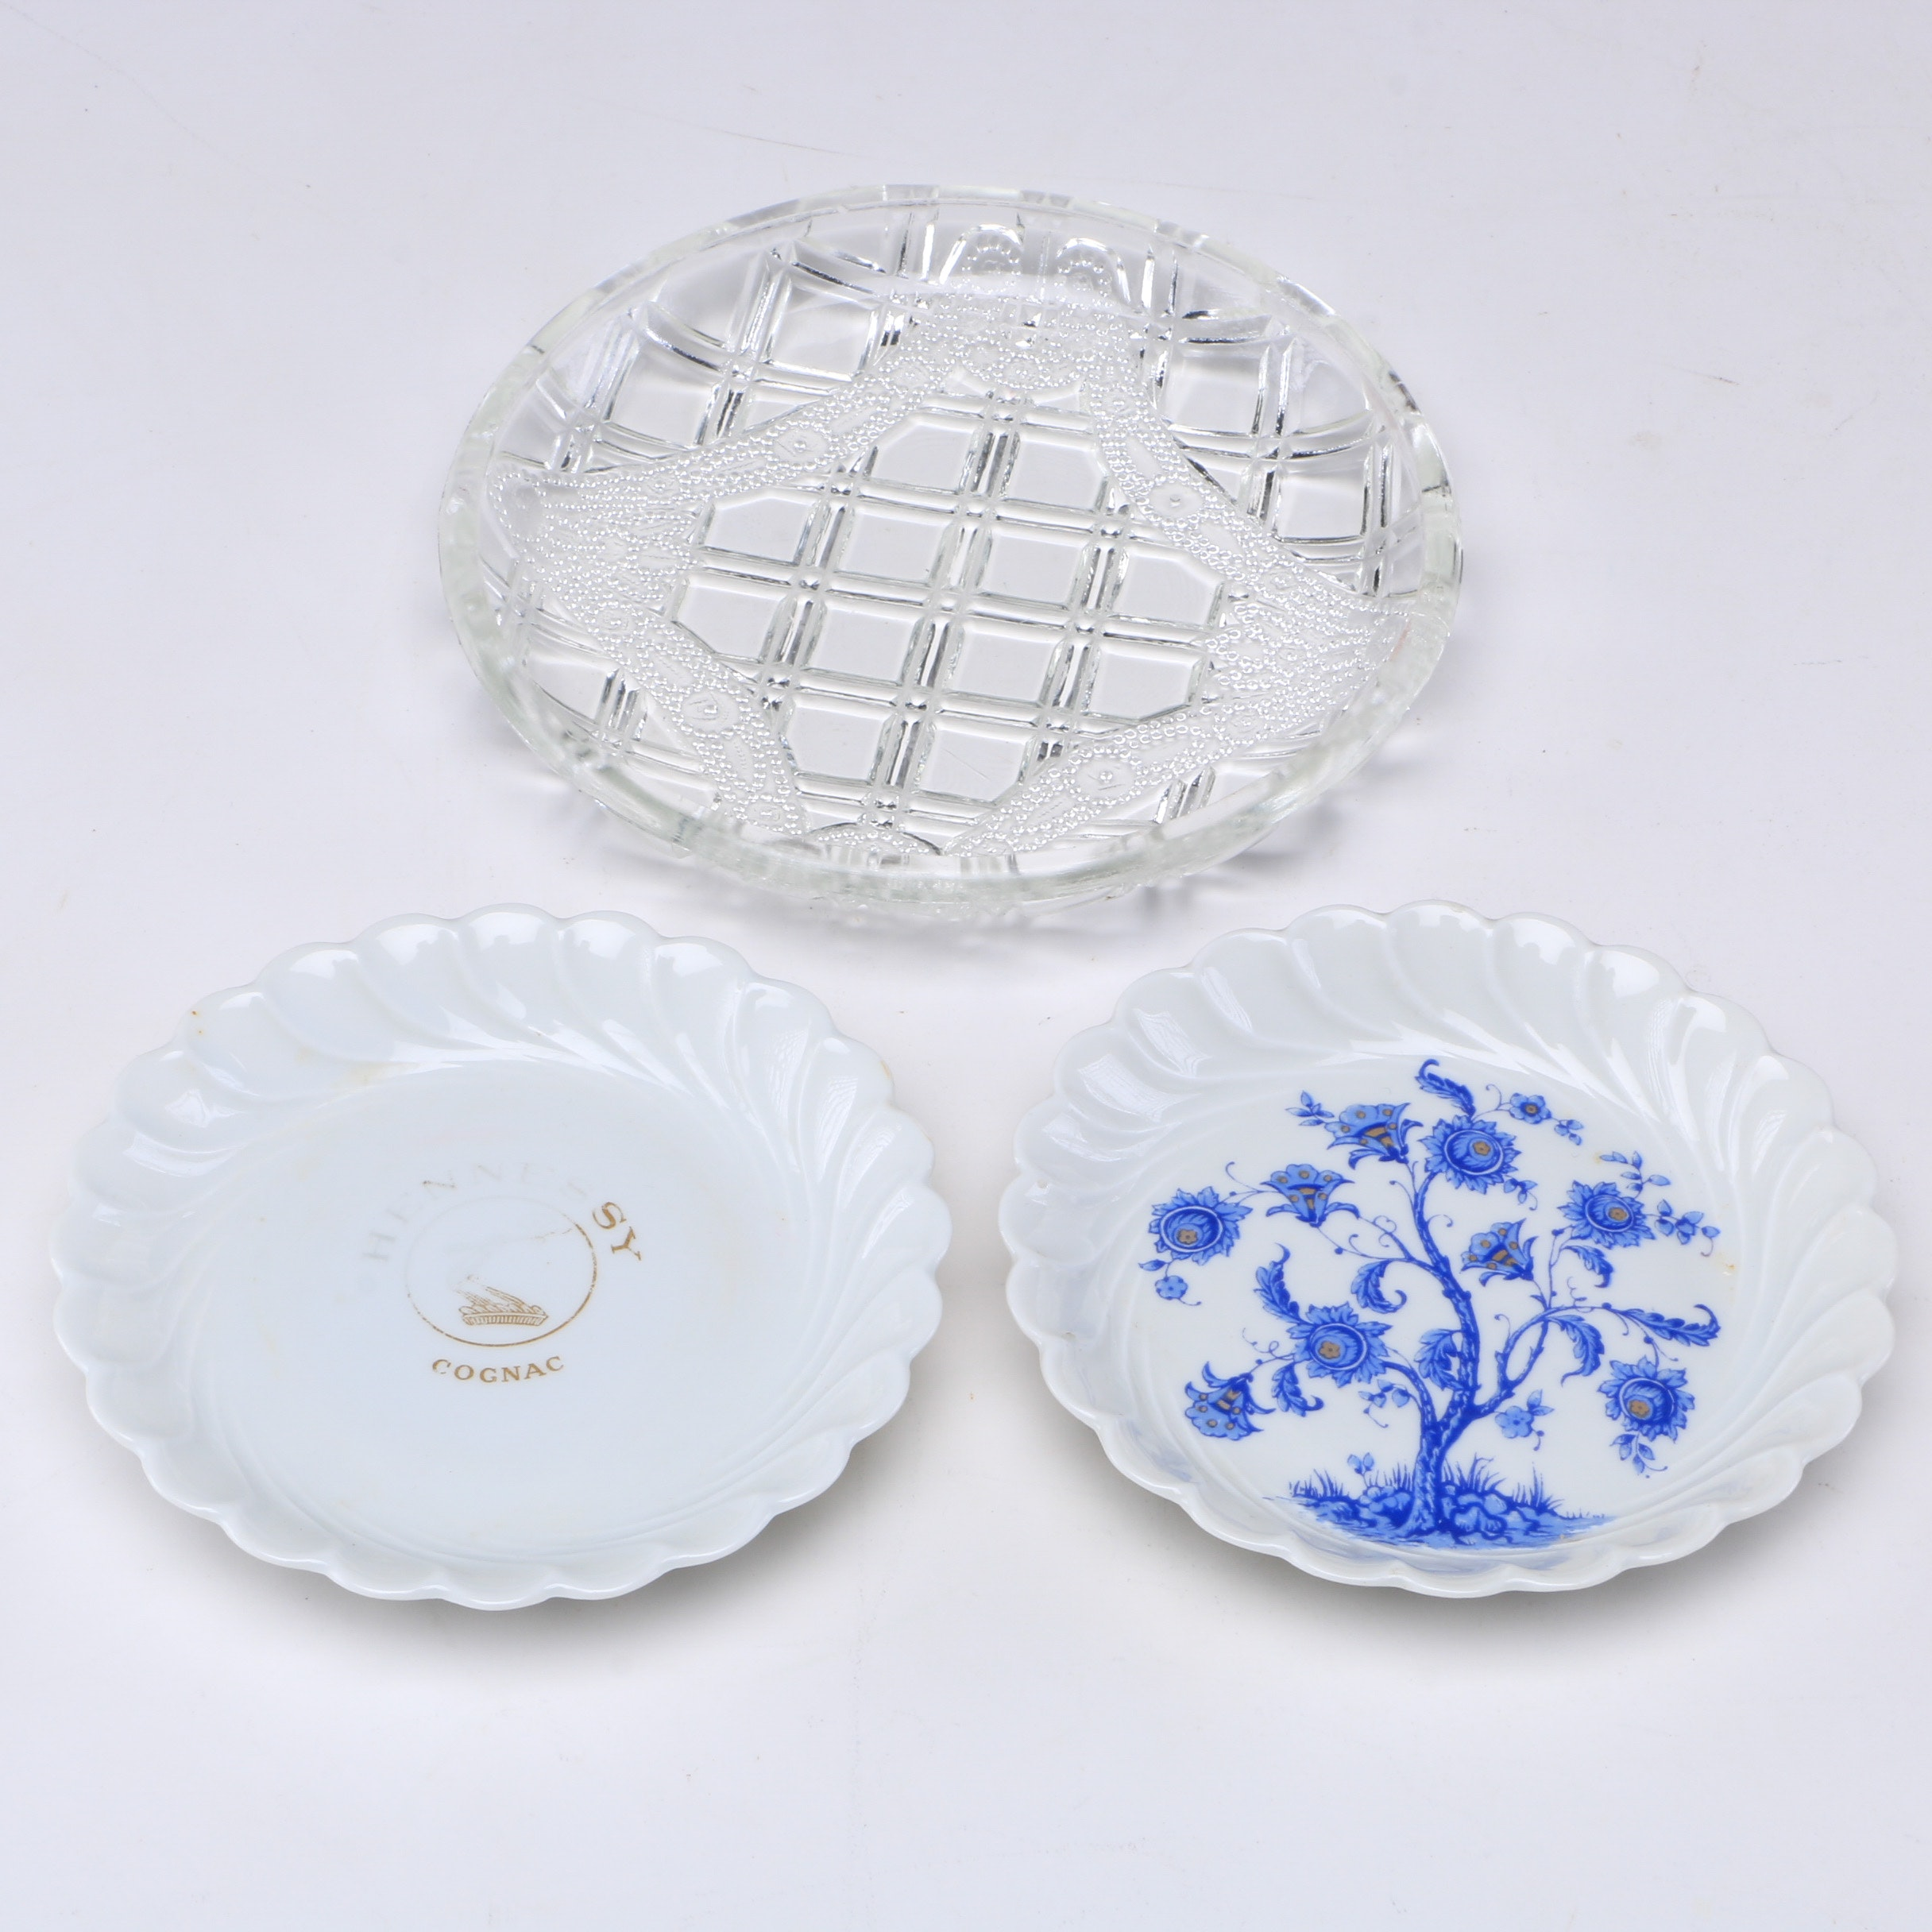 Group of Decorative Plates